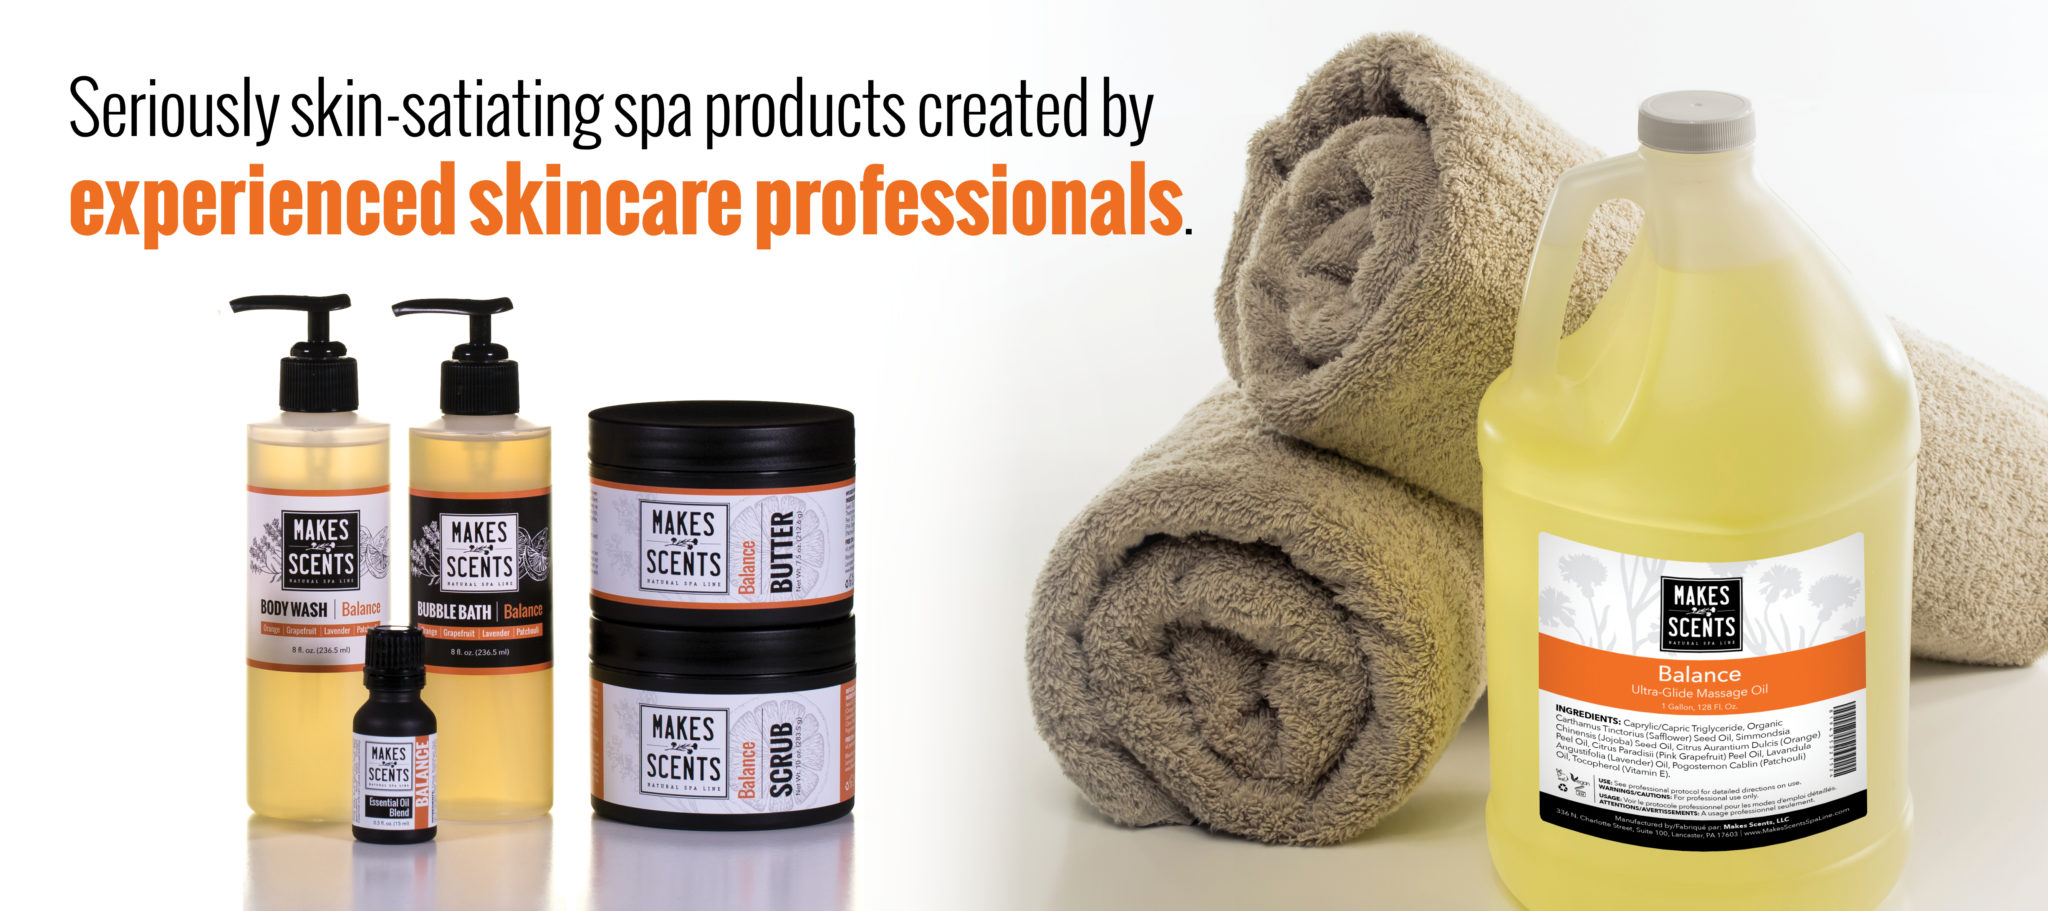 Professional Skincare Products | Makes Scents Natural Spa Line